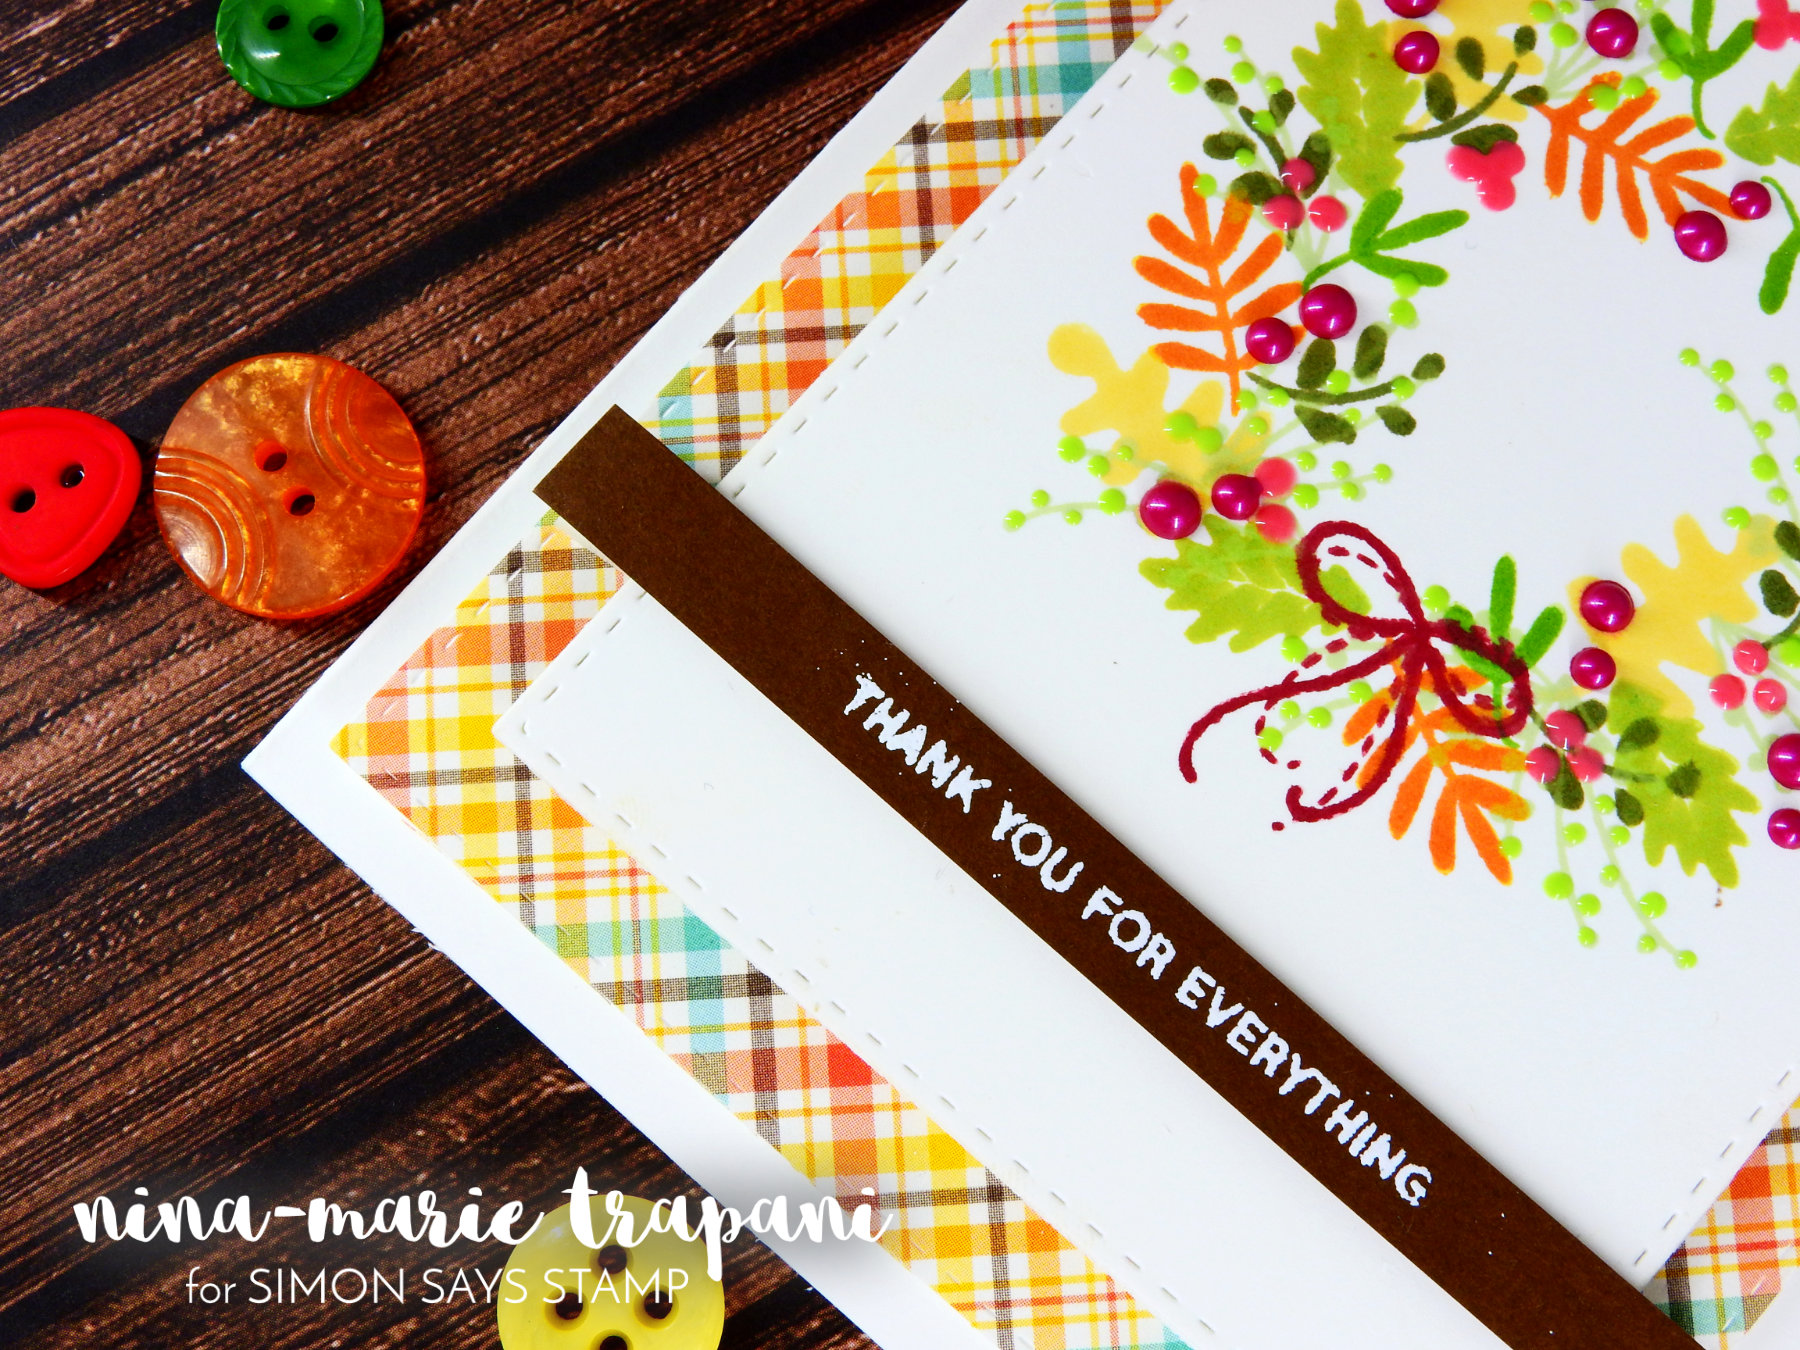 layering-stamped-images-simon-oct-card-kit_4